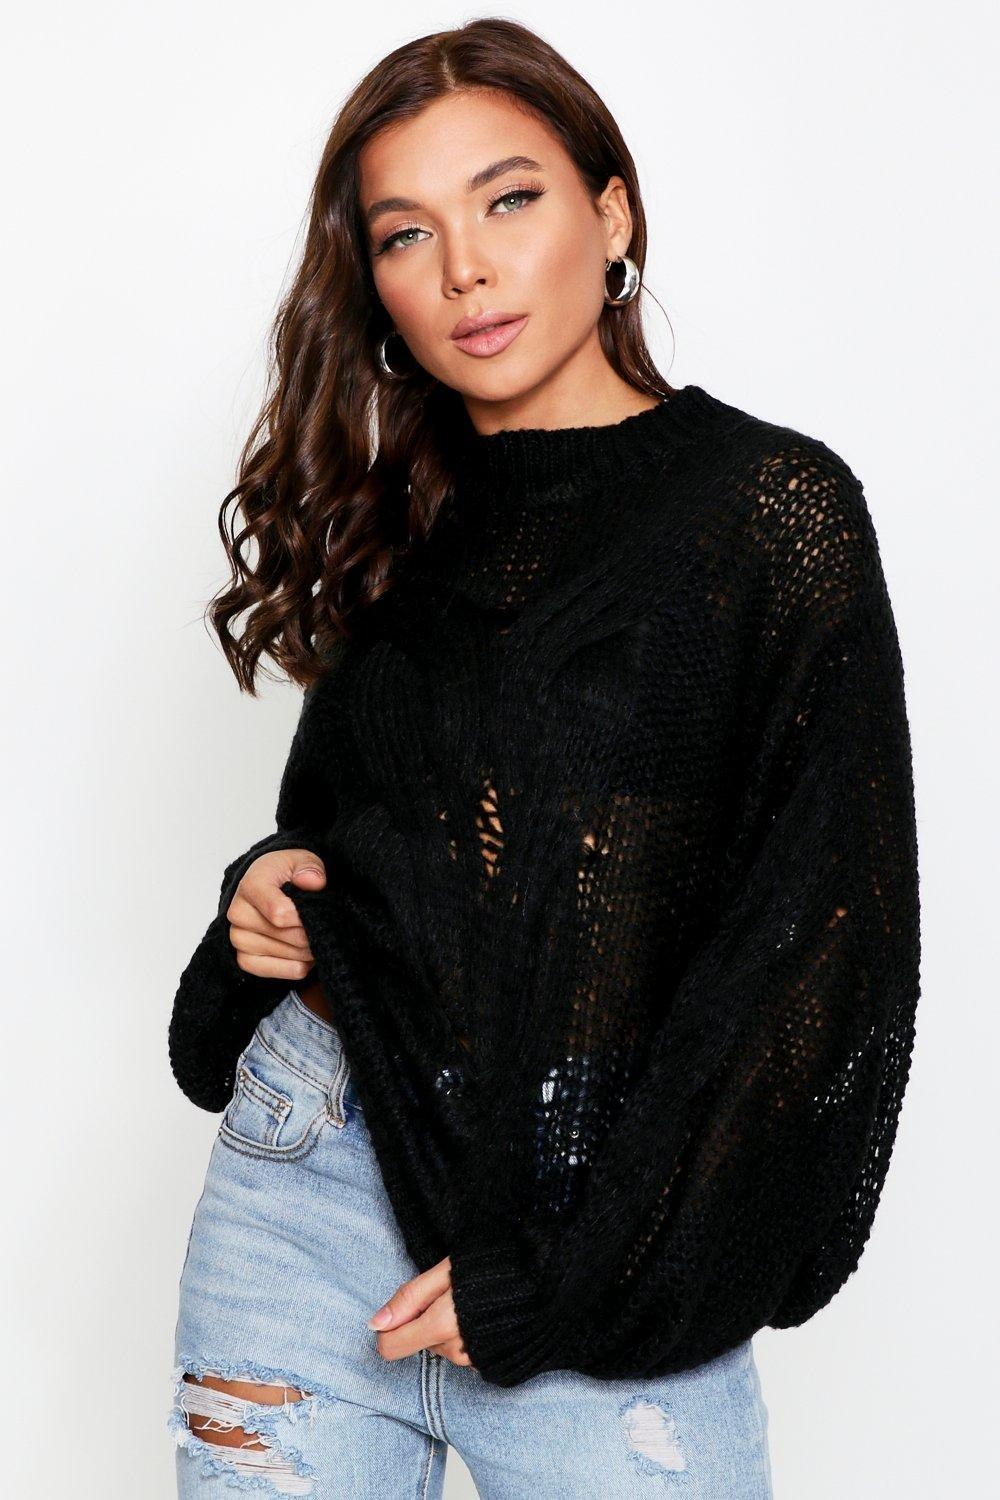 Womens Mohair Look Oversized Cable Knit Jumper - black - S/M, Black - Boohoo.com